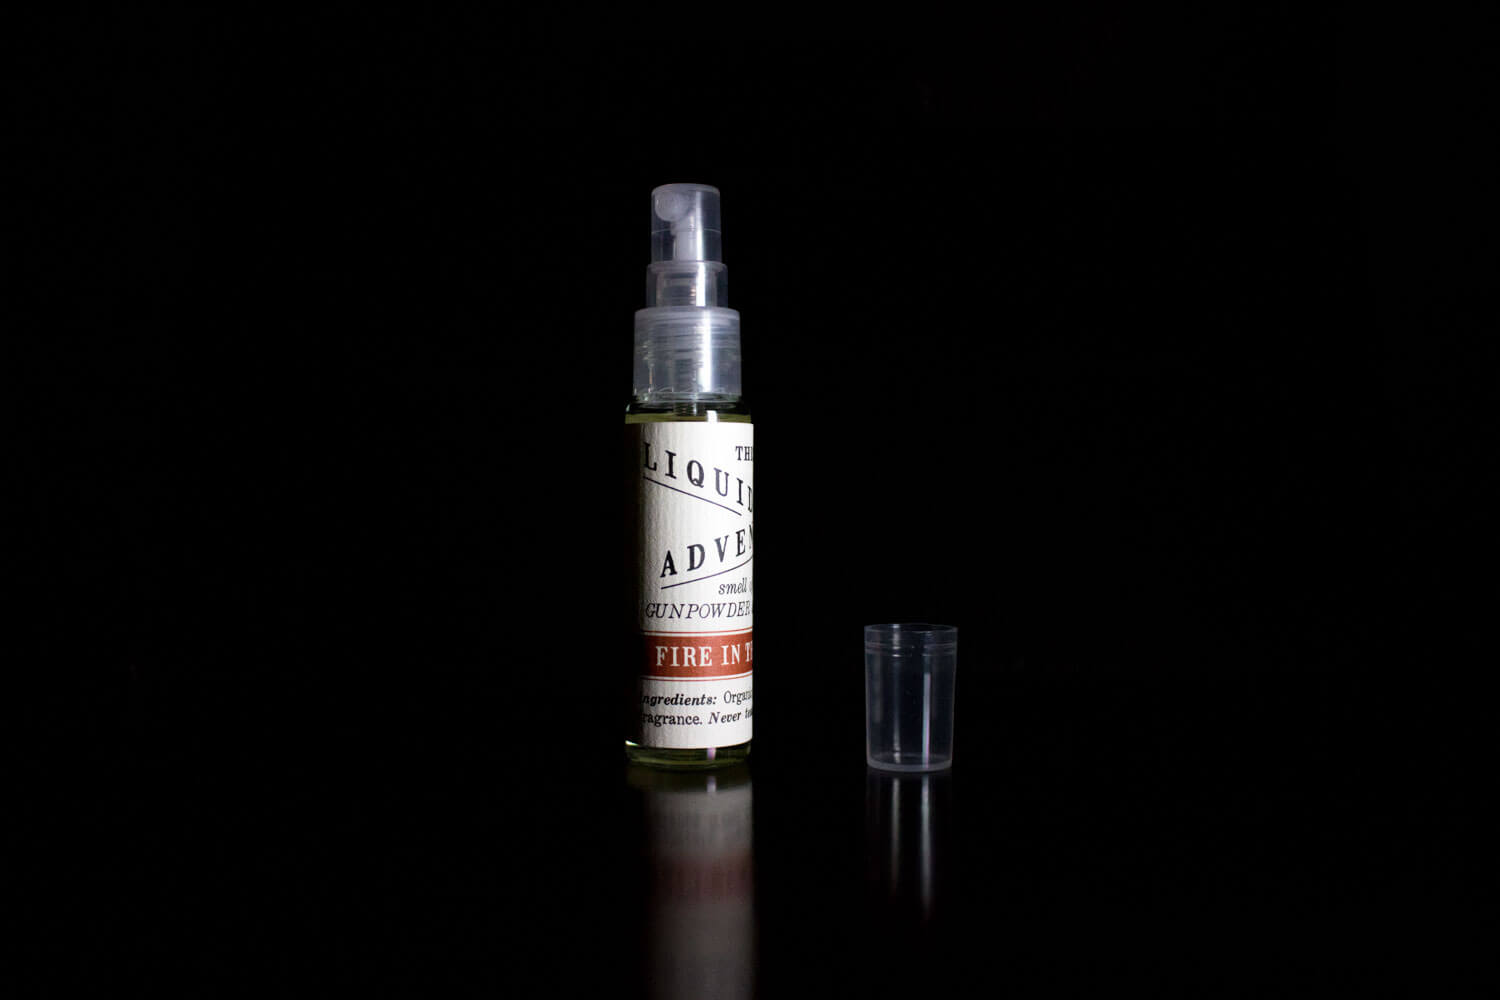 Hands On Review: Fire in the Hole Spray Cologne by Outlaw Soaps